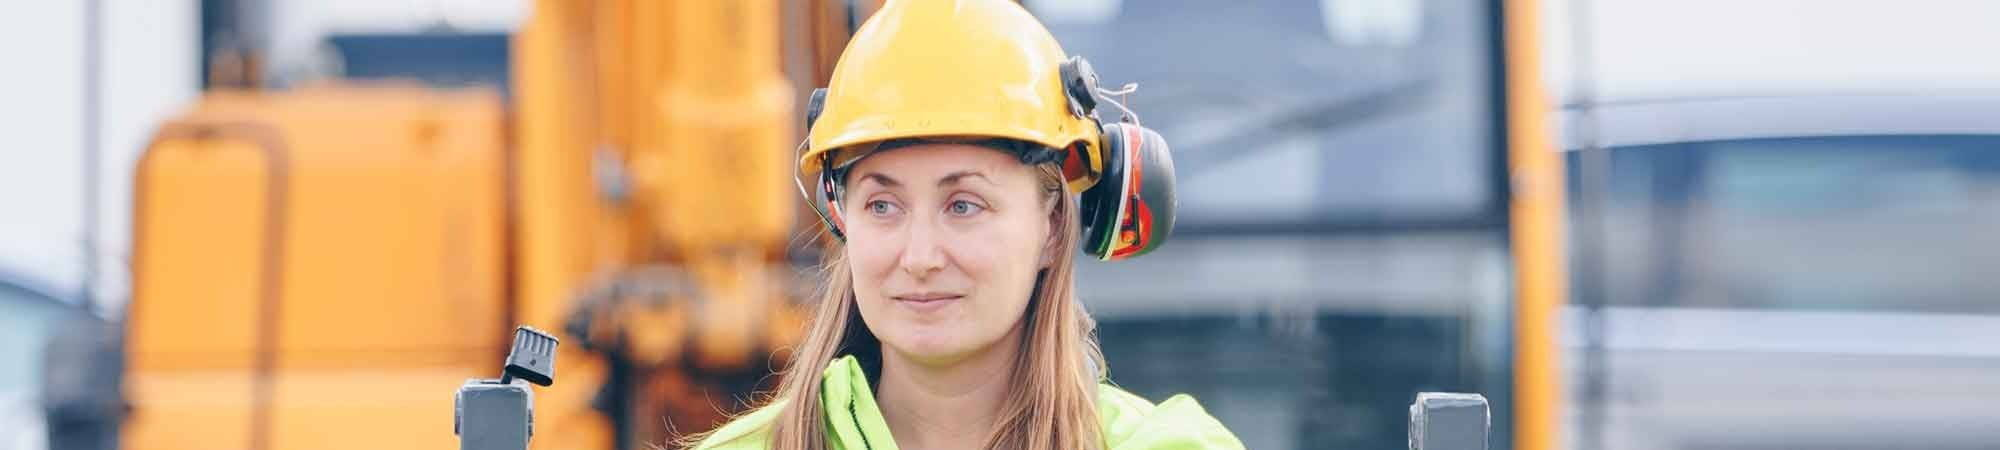 Female mining worker working onsite